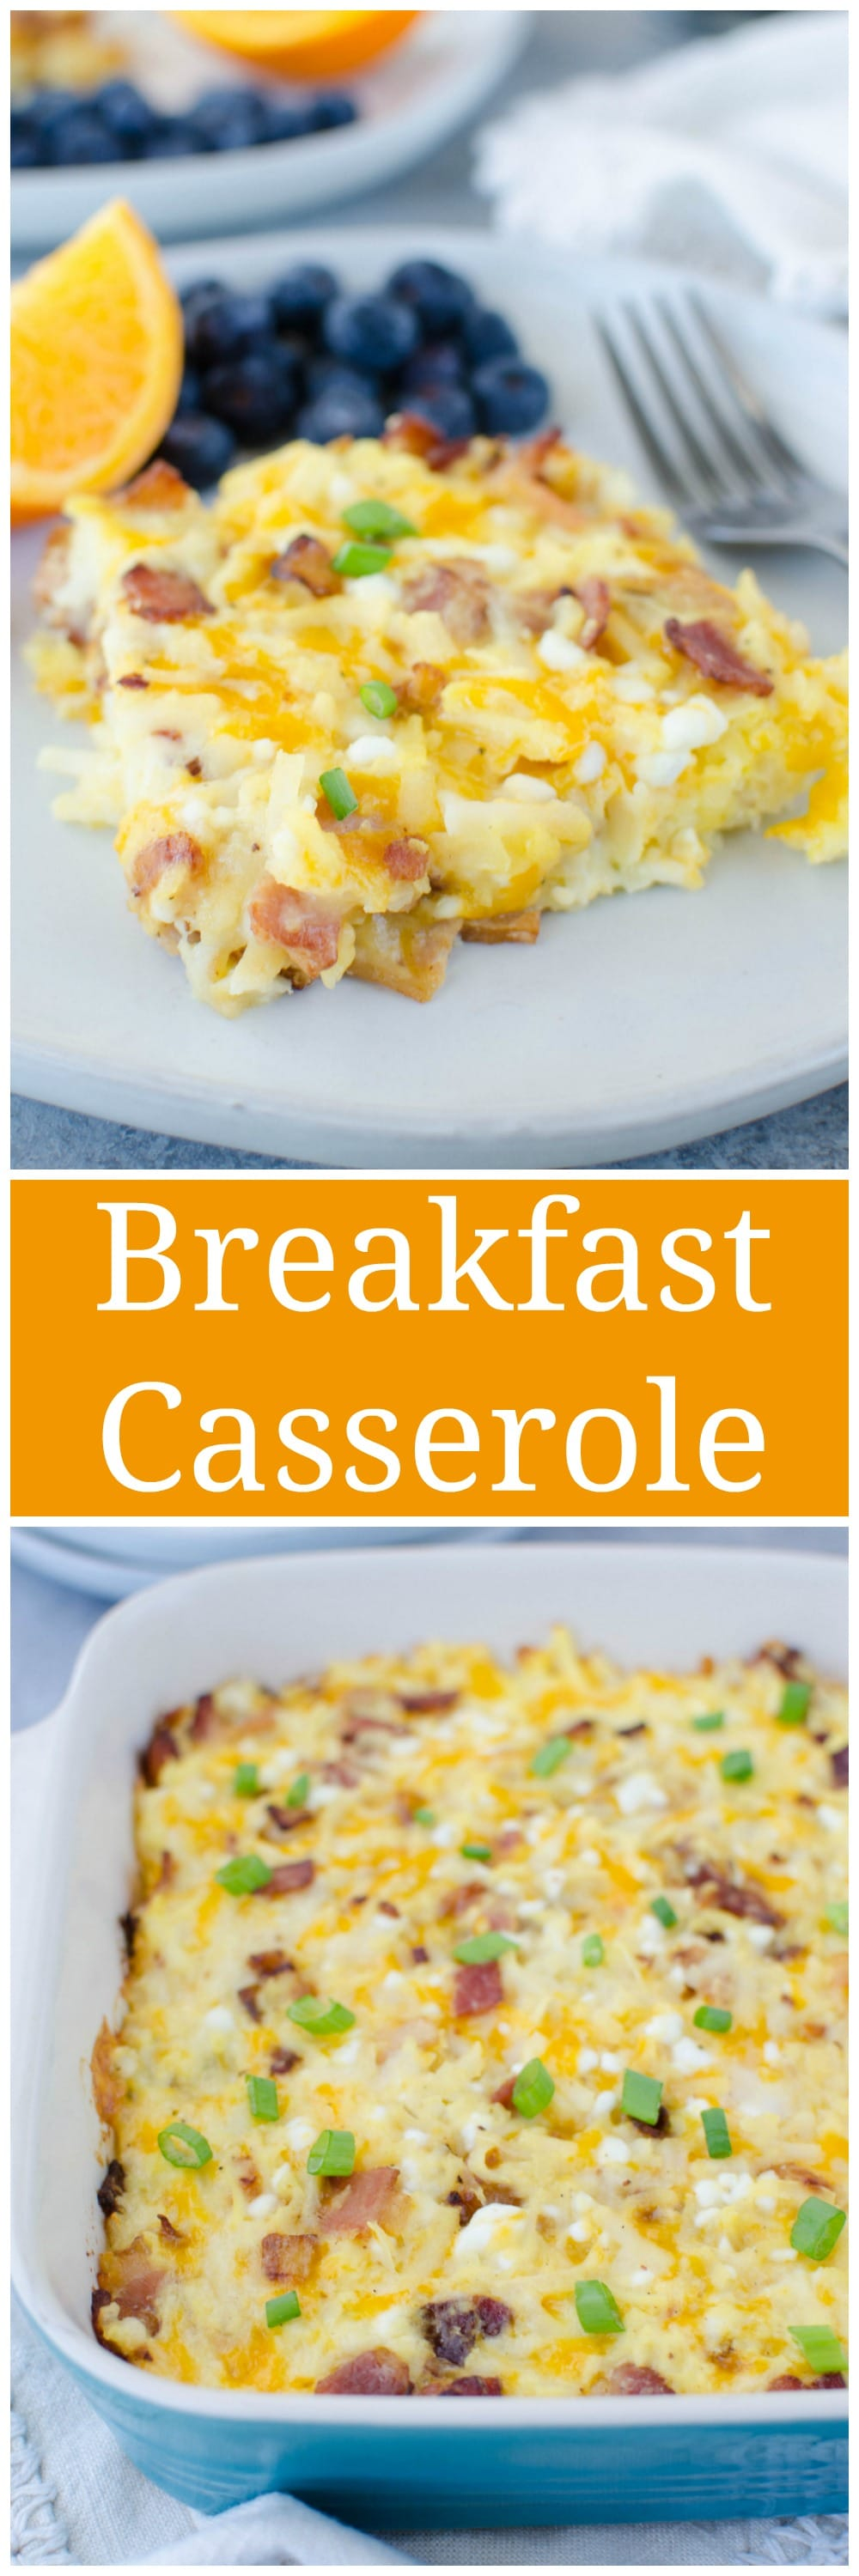 Amish Breakfast Casserole - bacon, hashbrowns, 2 cheeses, and eggs! An easy, hearty weekend breakfast or meal prep it to have all week long.